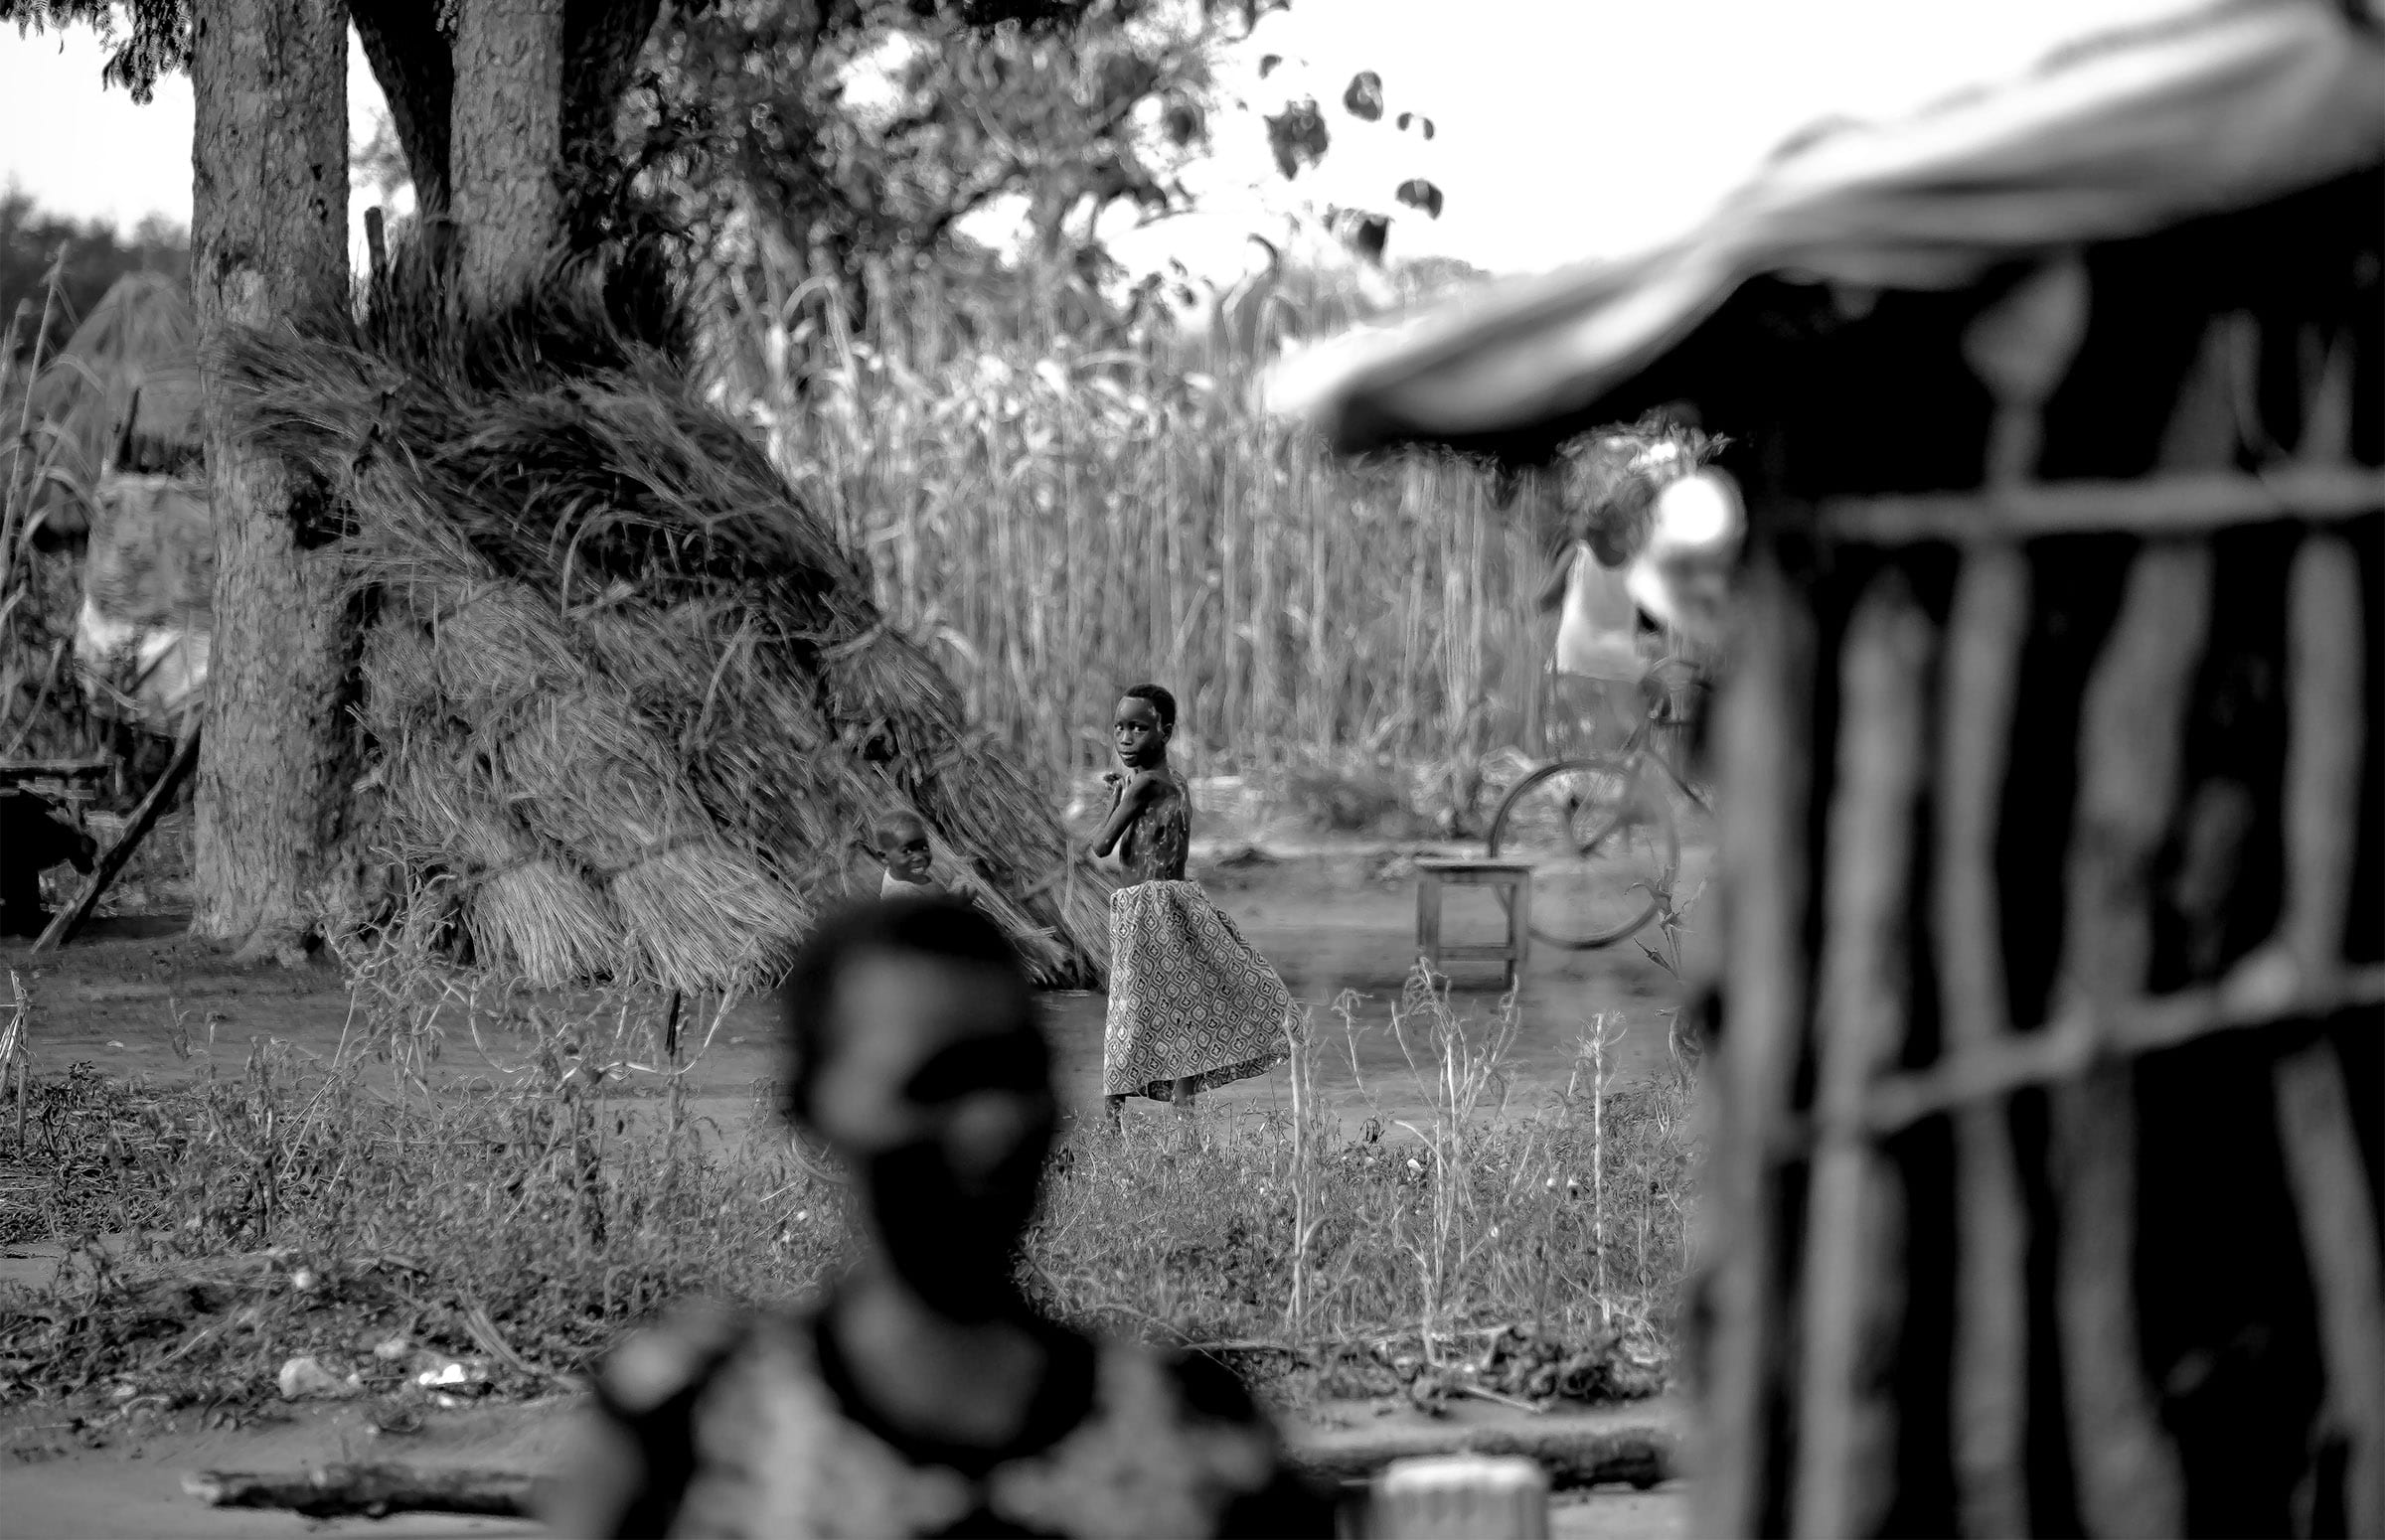 a setting of a refugee camp, with a child turning in the distance to face the camera